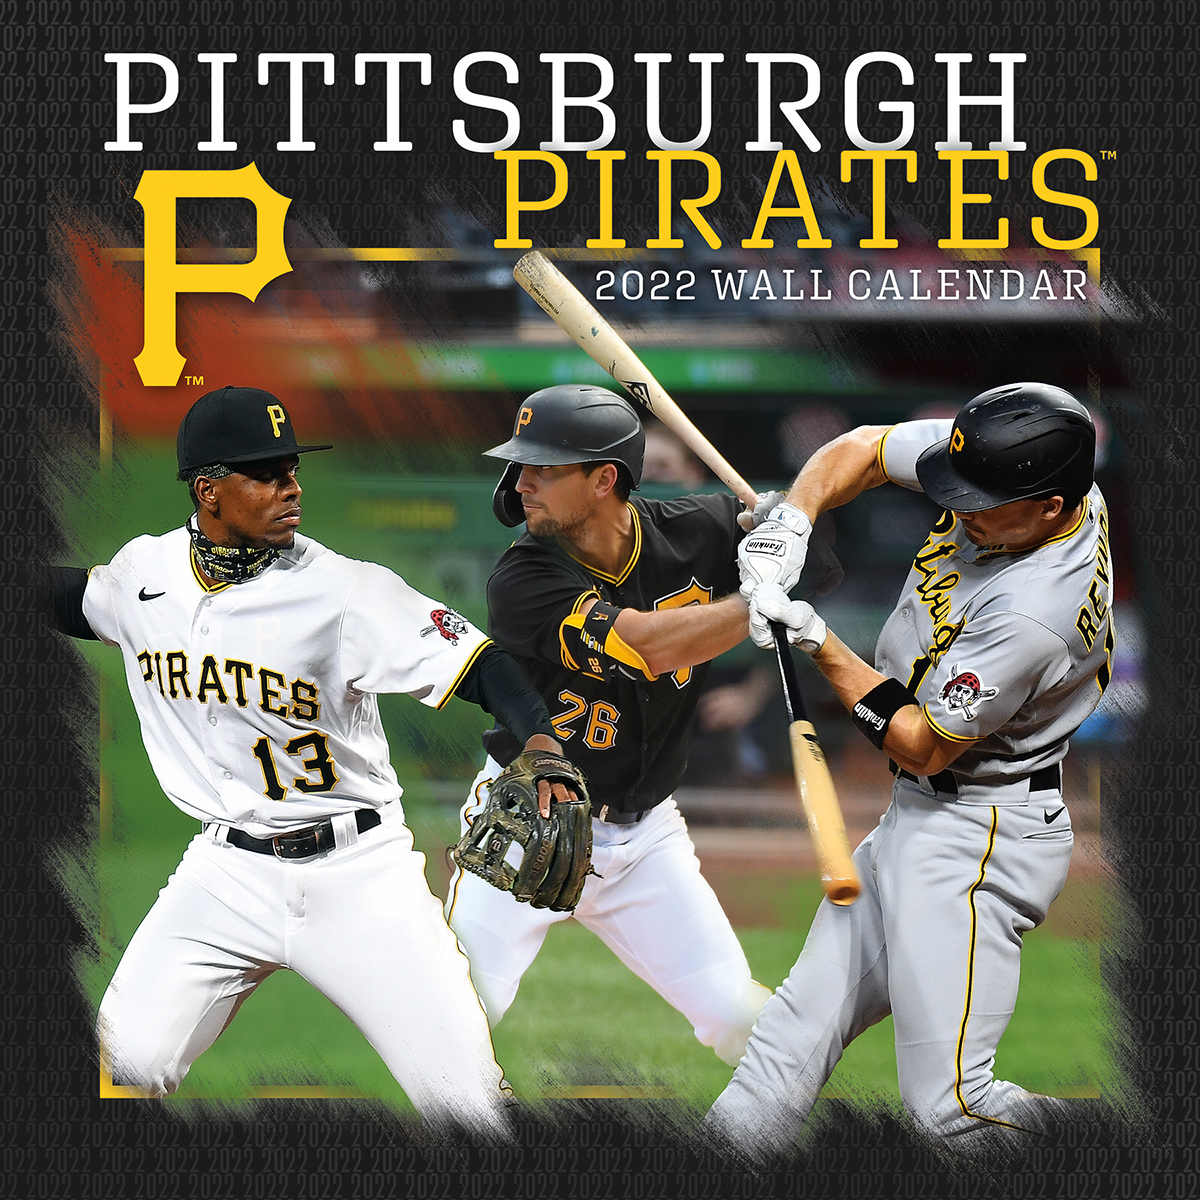 Pittsburgh Pirates 2020 Wall Calendar